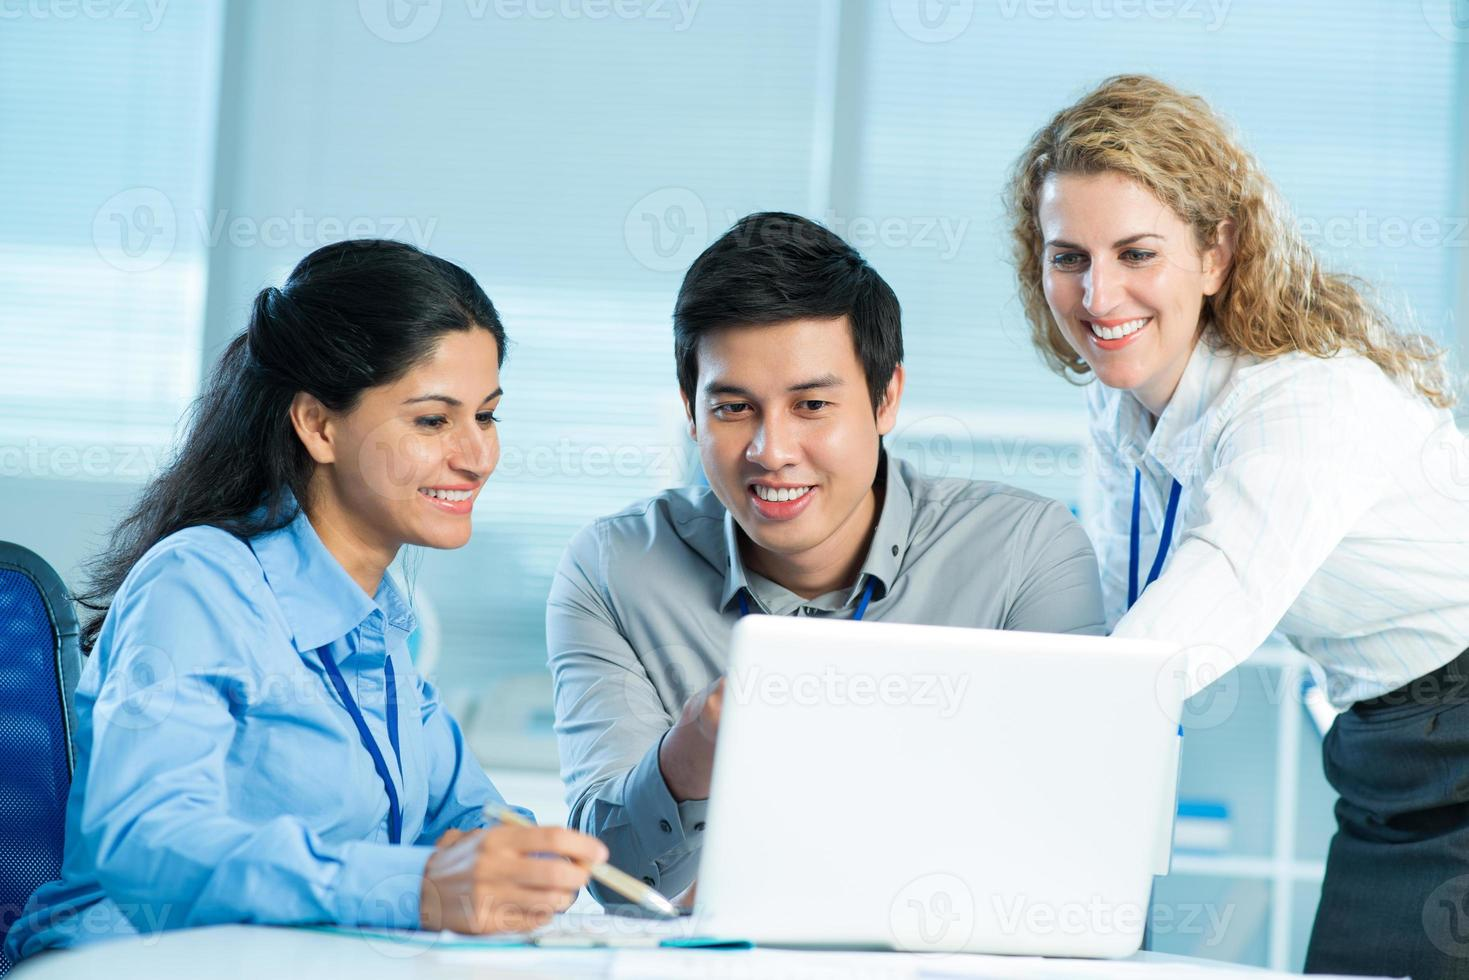 Networking together photo